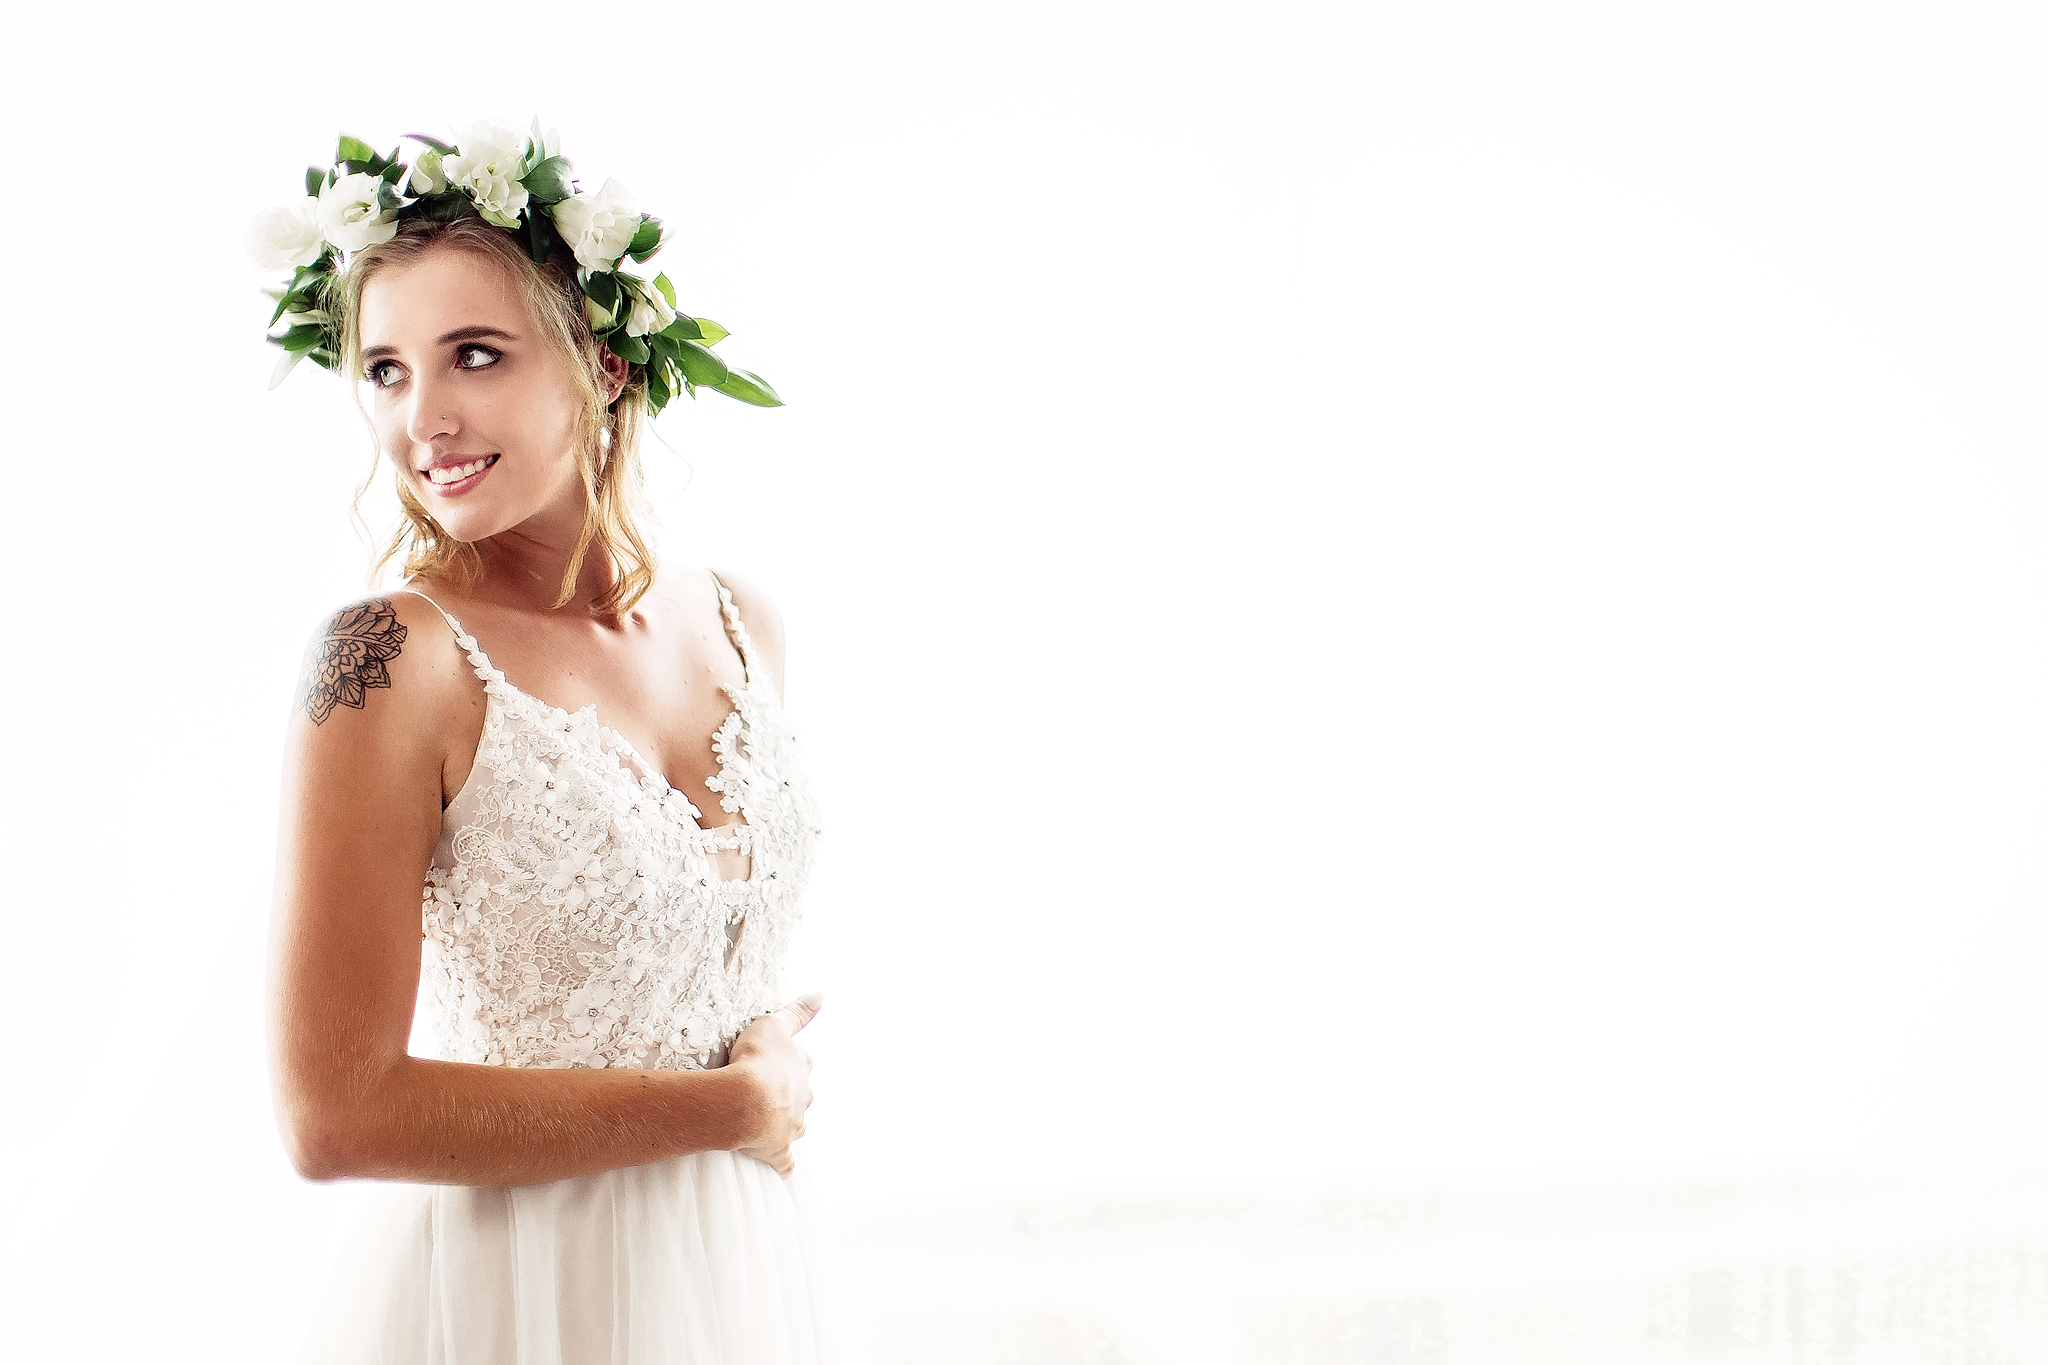 bride-with-floral-crown-and-mandala-tattoo-ruan-redelinghuys-photography-south-africa